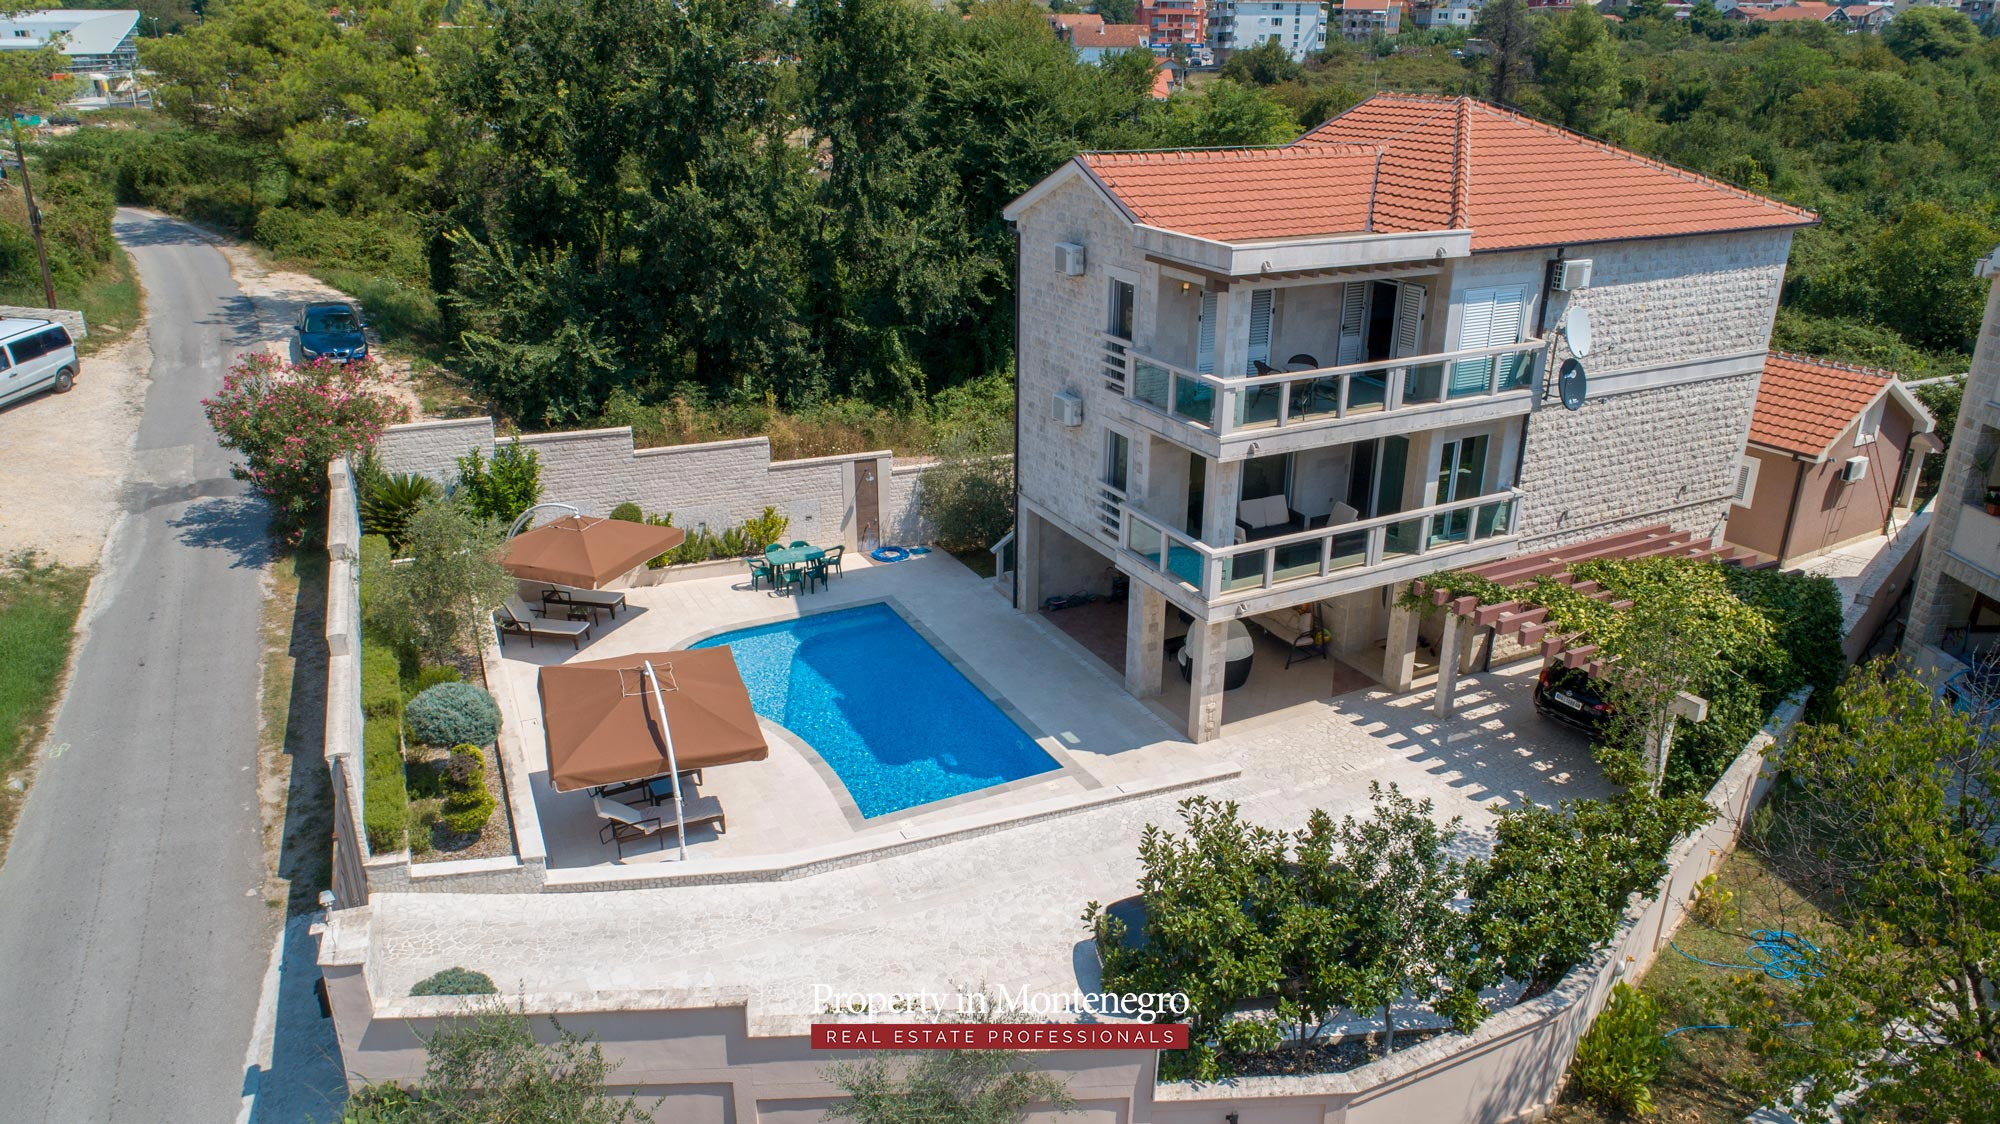 Villa-with-swimming-pool-for-sale-in-Tivat (9).jpg